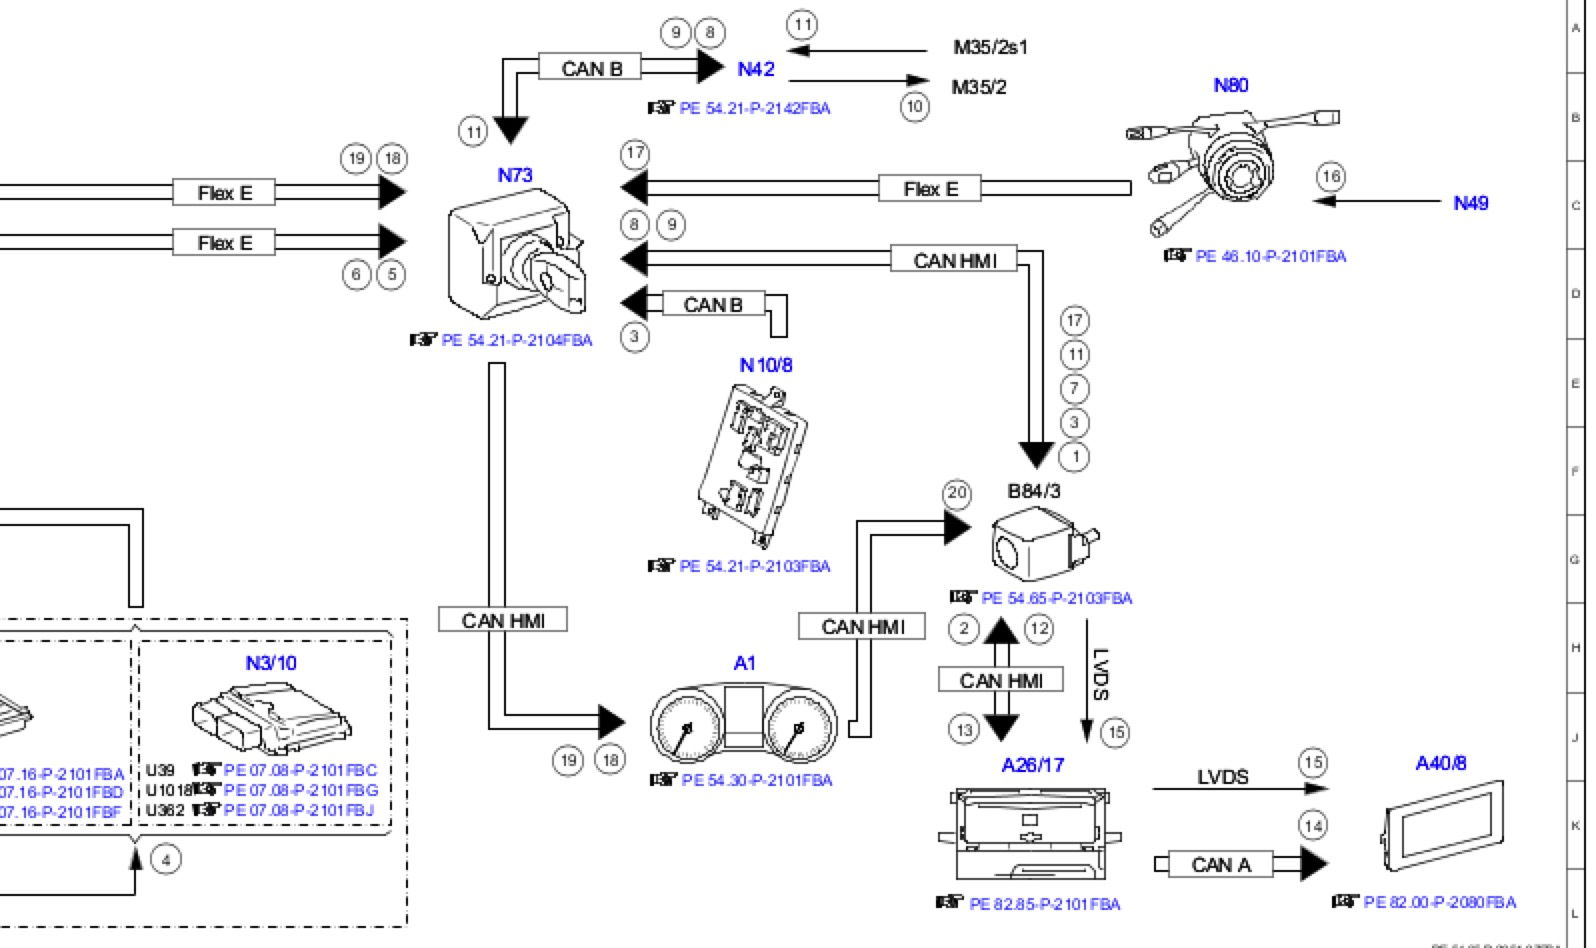 80 backup_camera_schematic_d77e1b48b5cdbd1db2febf96338a36301af6b39b 2016 c300 aftermarket rear view camera diy install mbworld org 2007 Acura MDX Electrical Diagram at gsmx.co